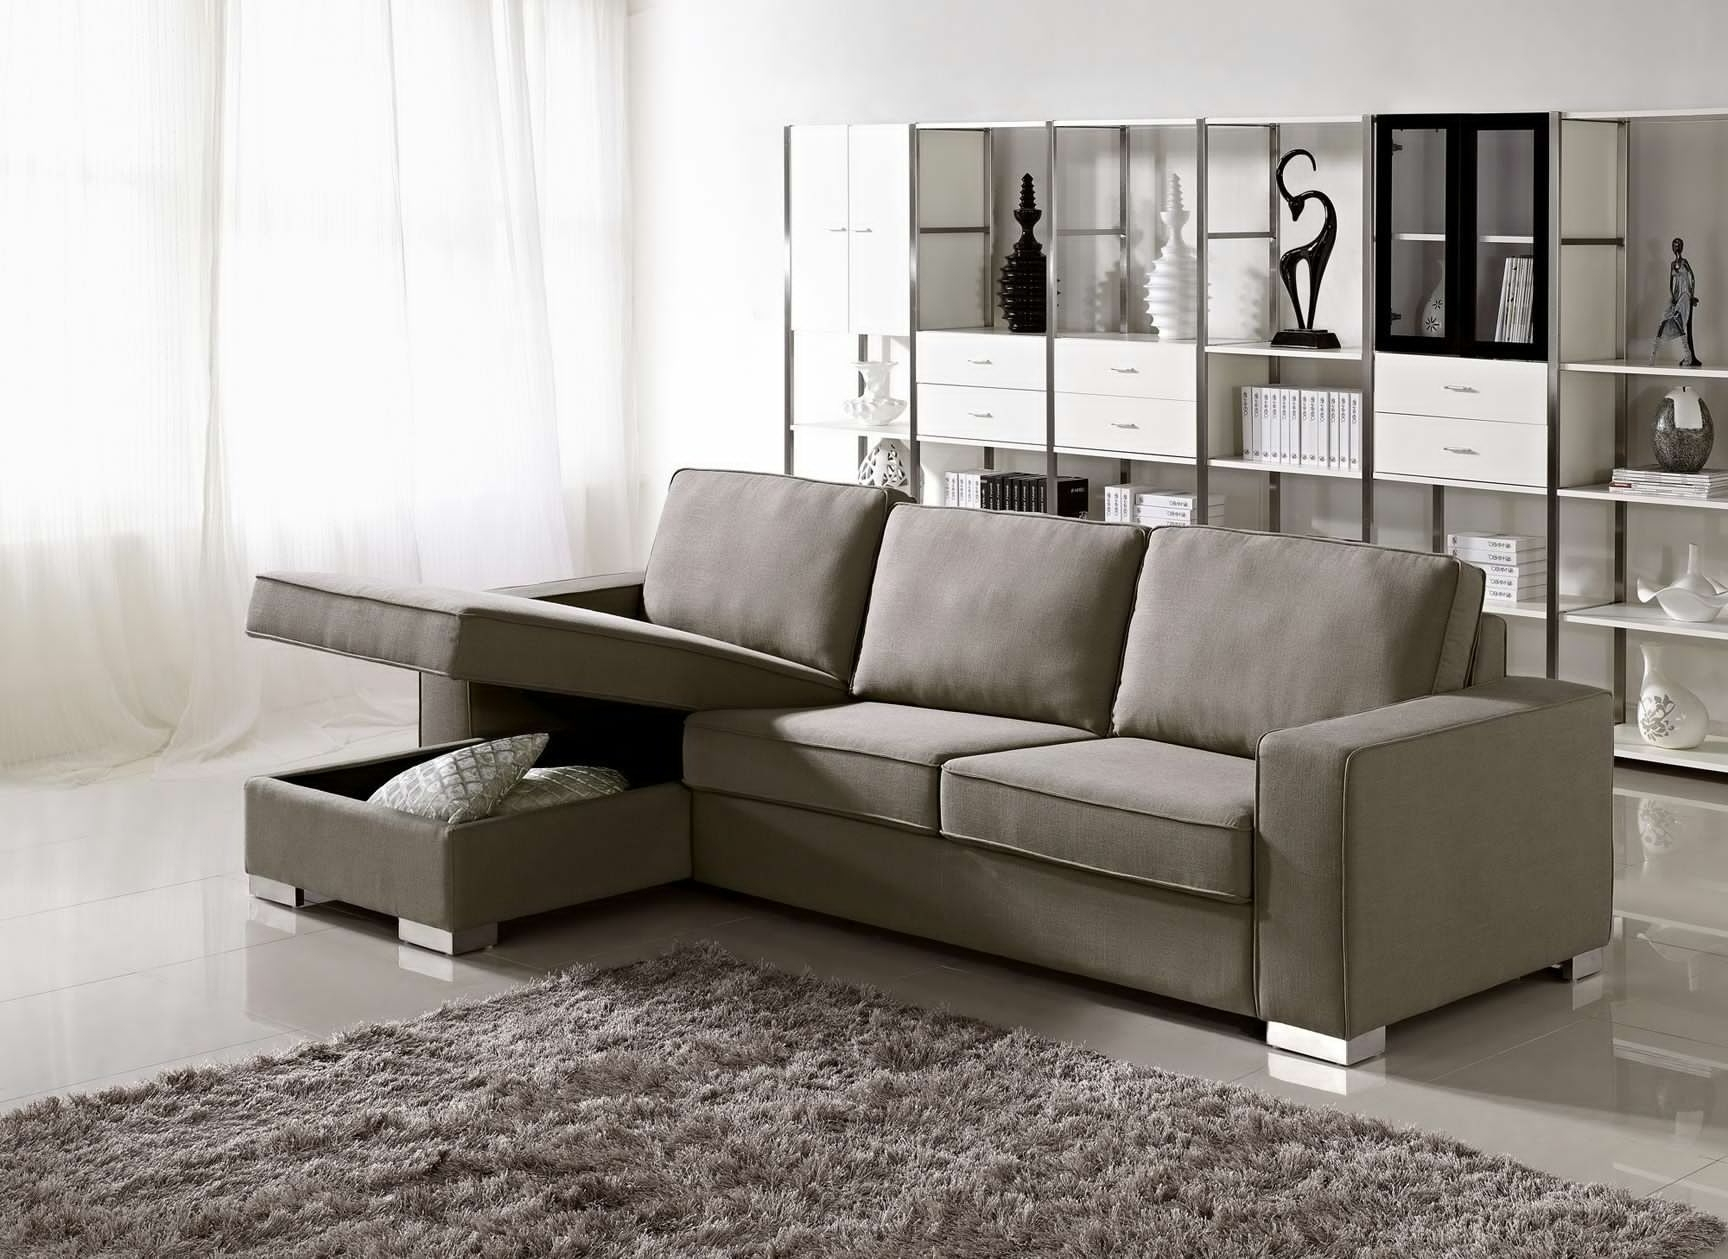 Recent Sectional Sofas For Condos Within Sectional Sofa Design: Apartment Size Sectional Sofa With Chaise (View 14 of 20)